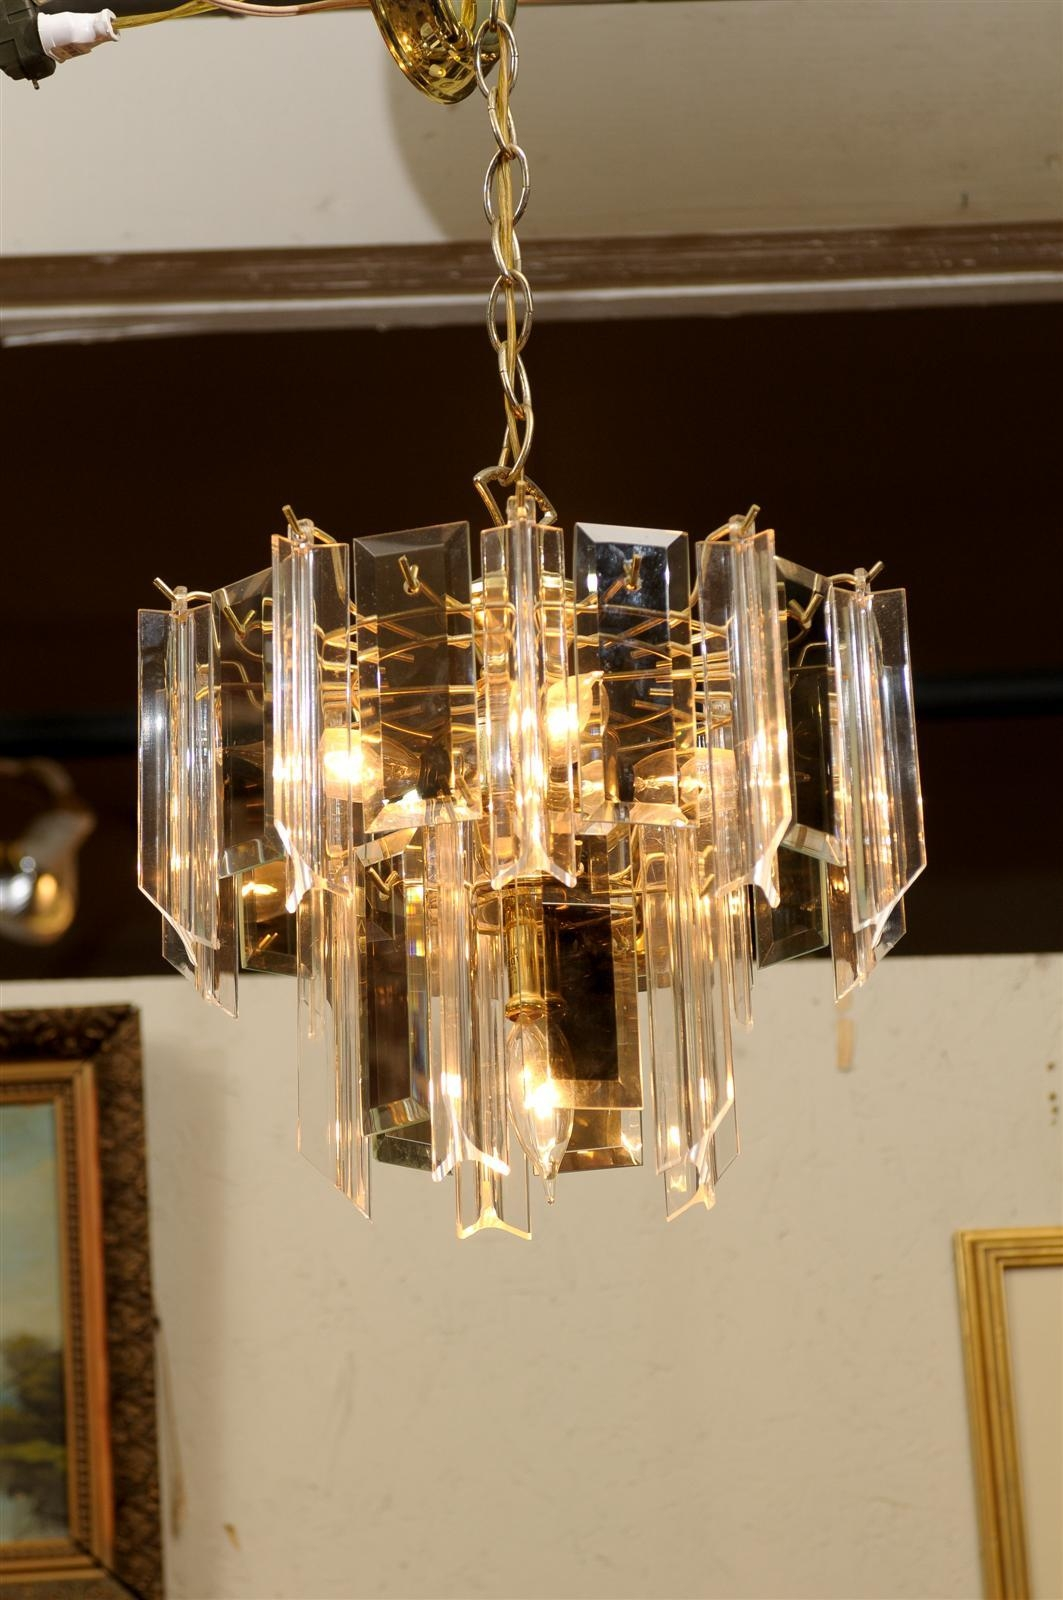 Vintage Waterfall Chandelier Of Brass Smoked Glass And Lucite At In Brass And Glass Chandelier (Image 14 of 15)